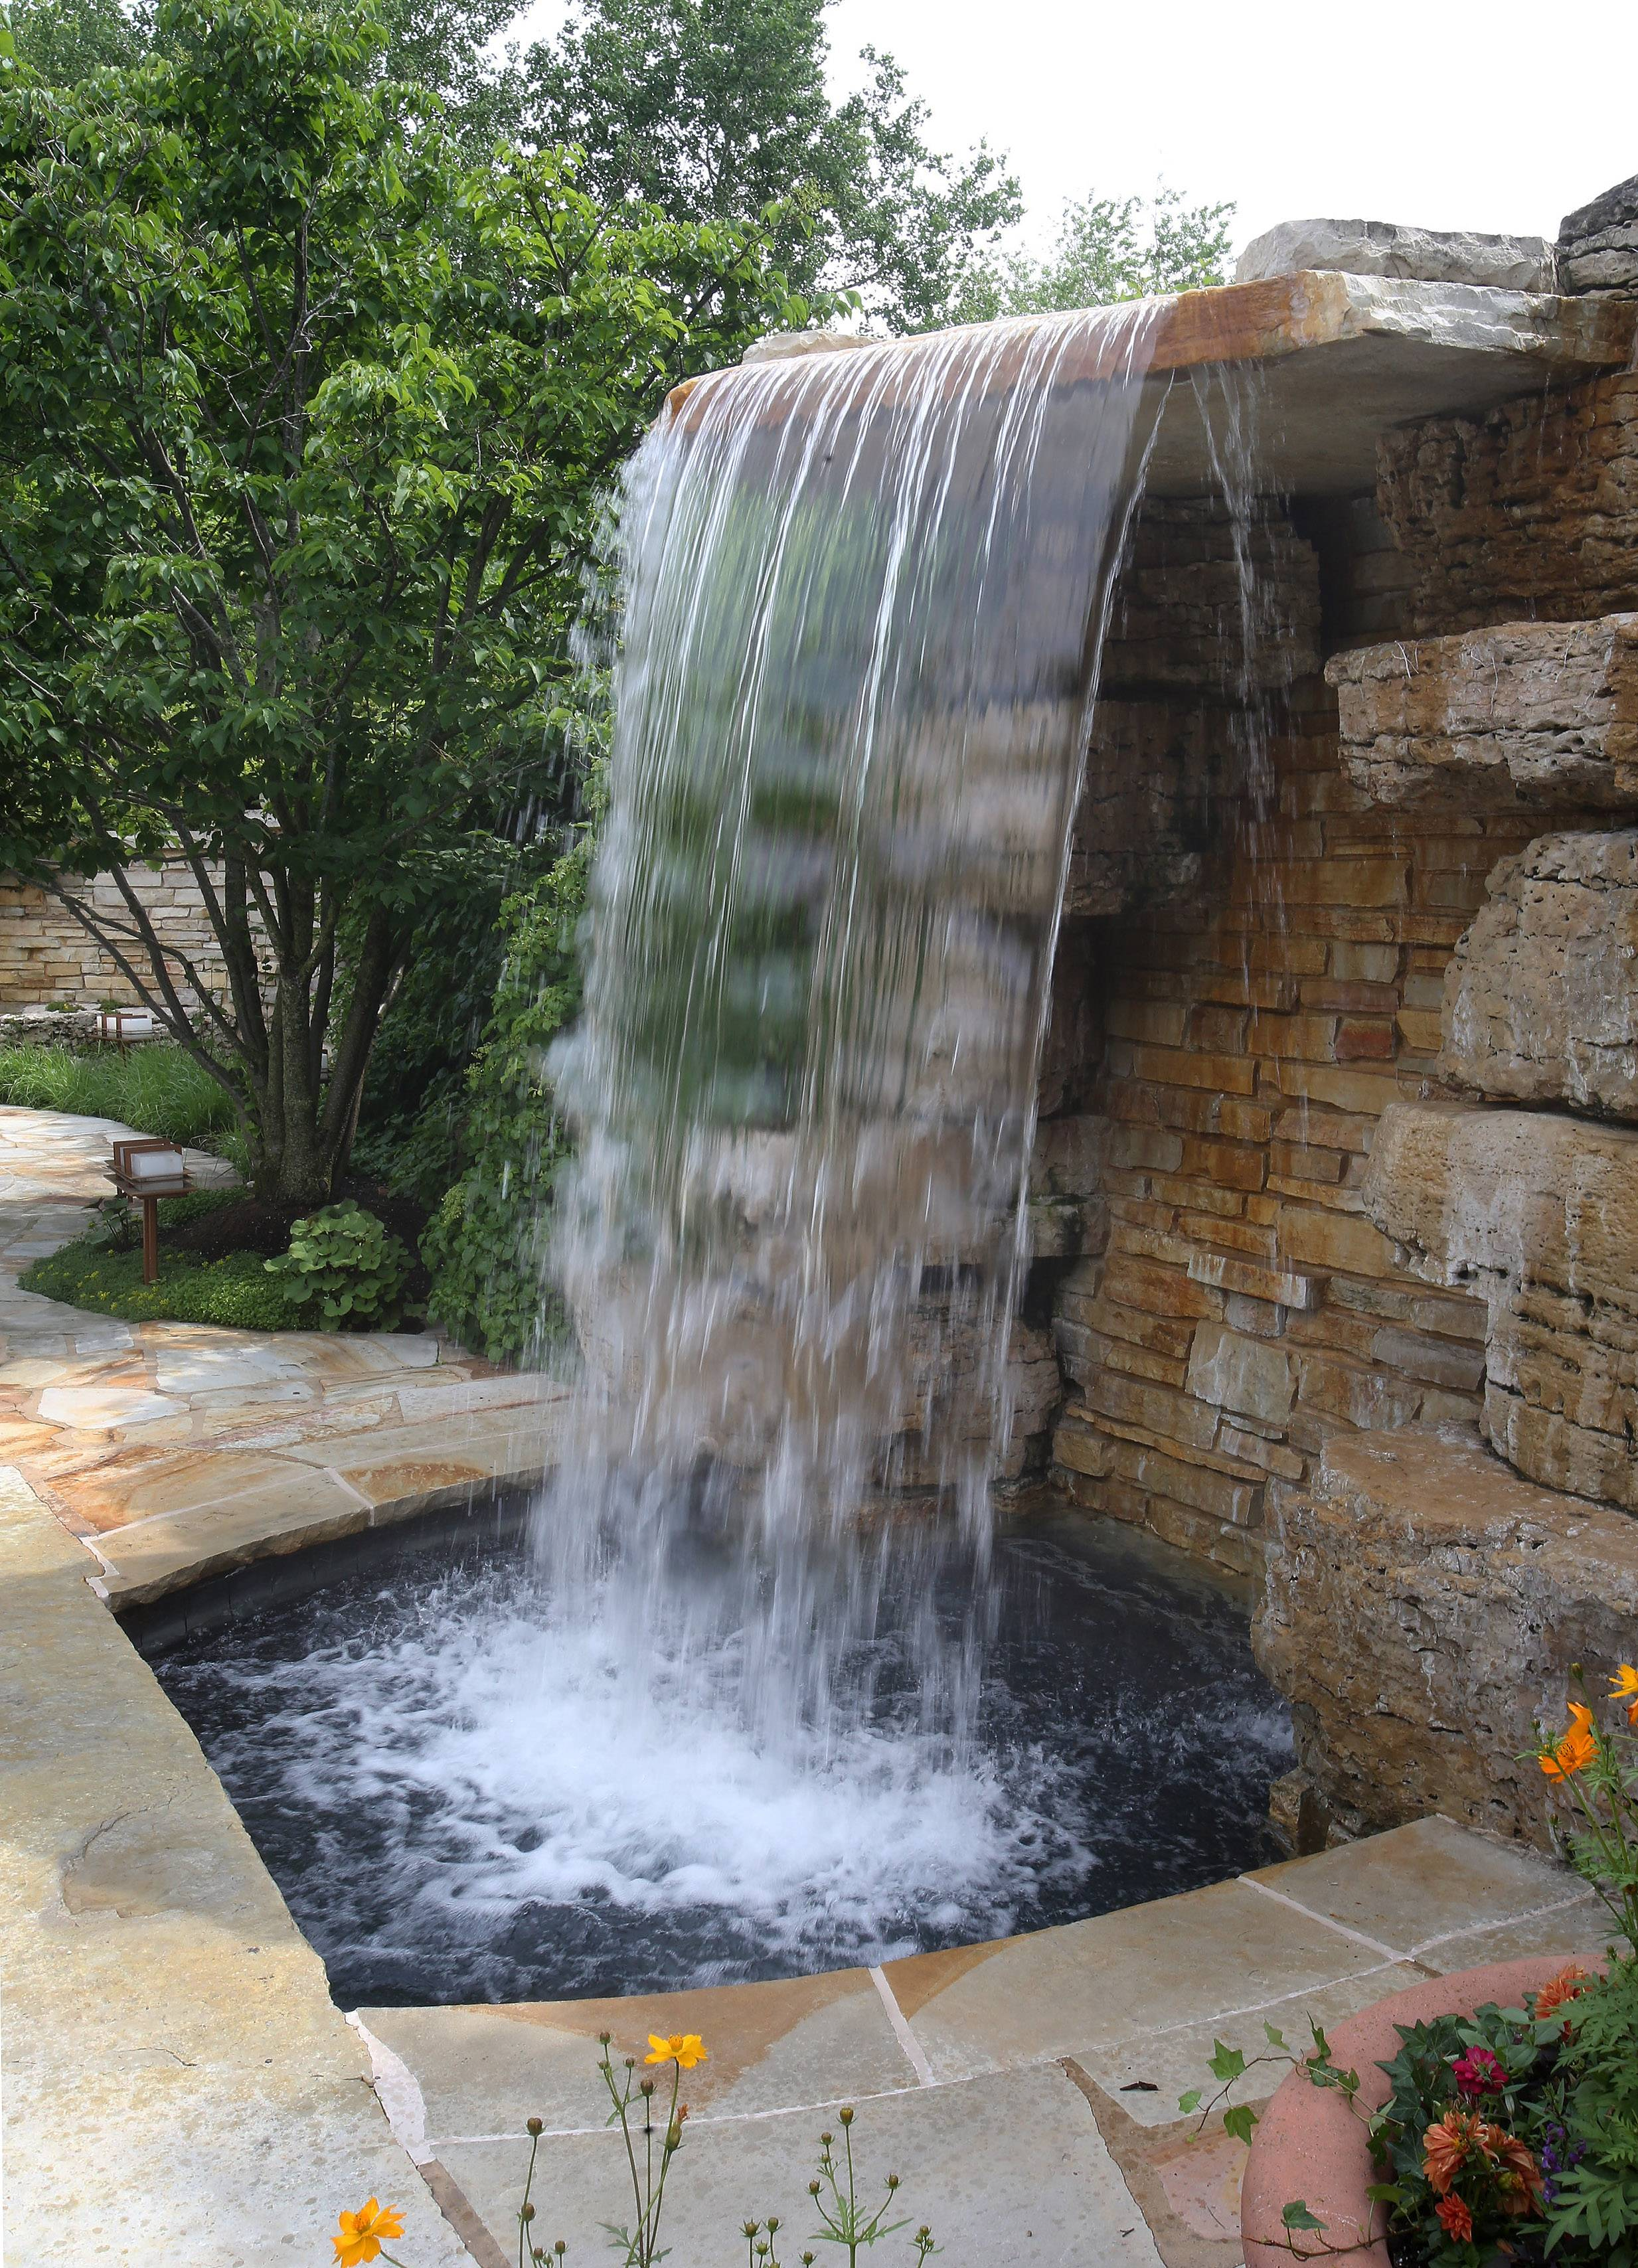 The waterfall by the swimming pool at this Barrington Hills estate enhances the sense of privacy and relaxation.